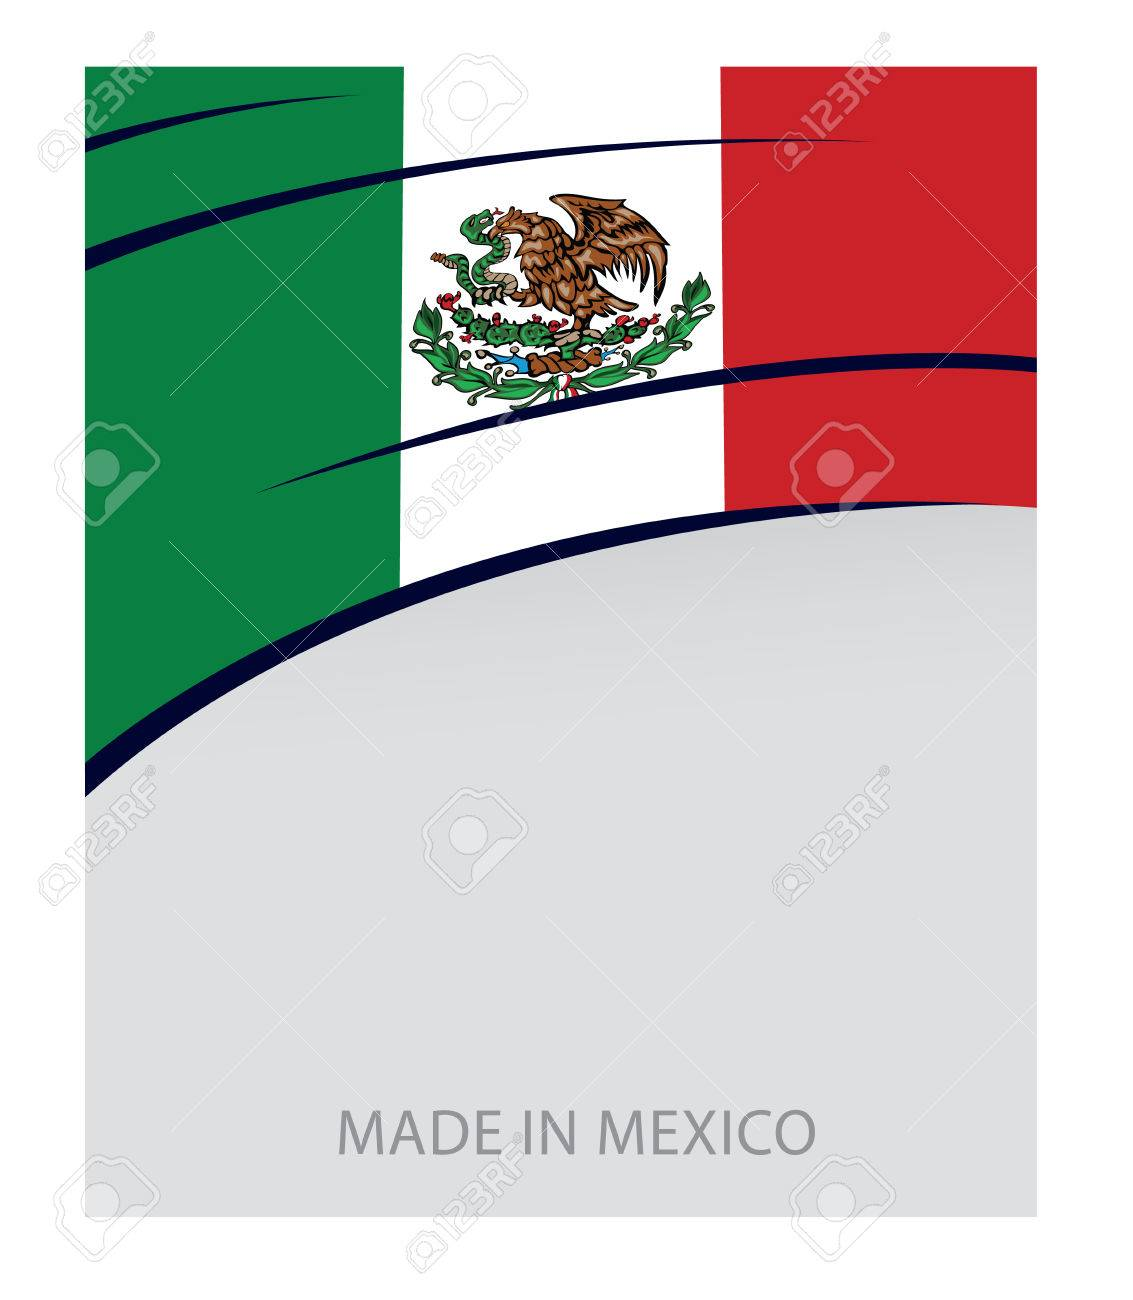 luxury colors mexican flag image collection entry level resume